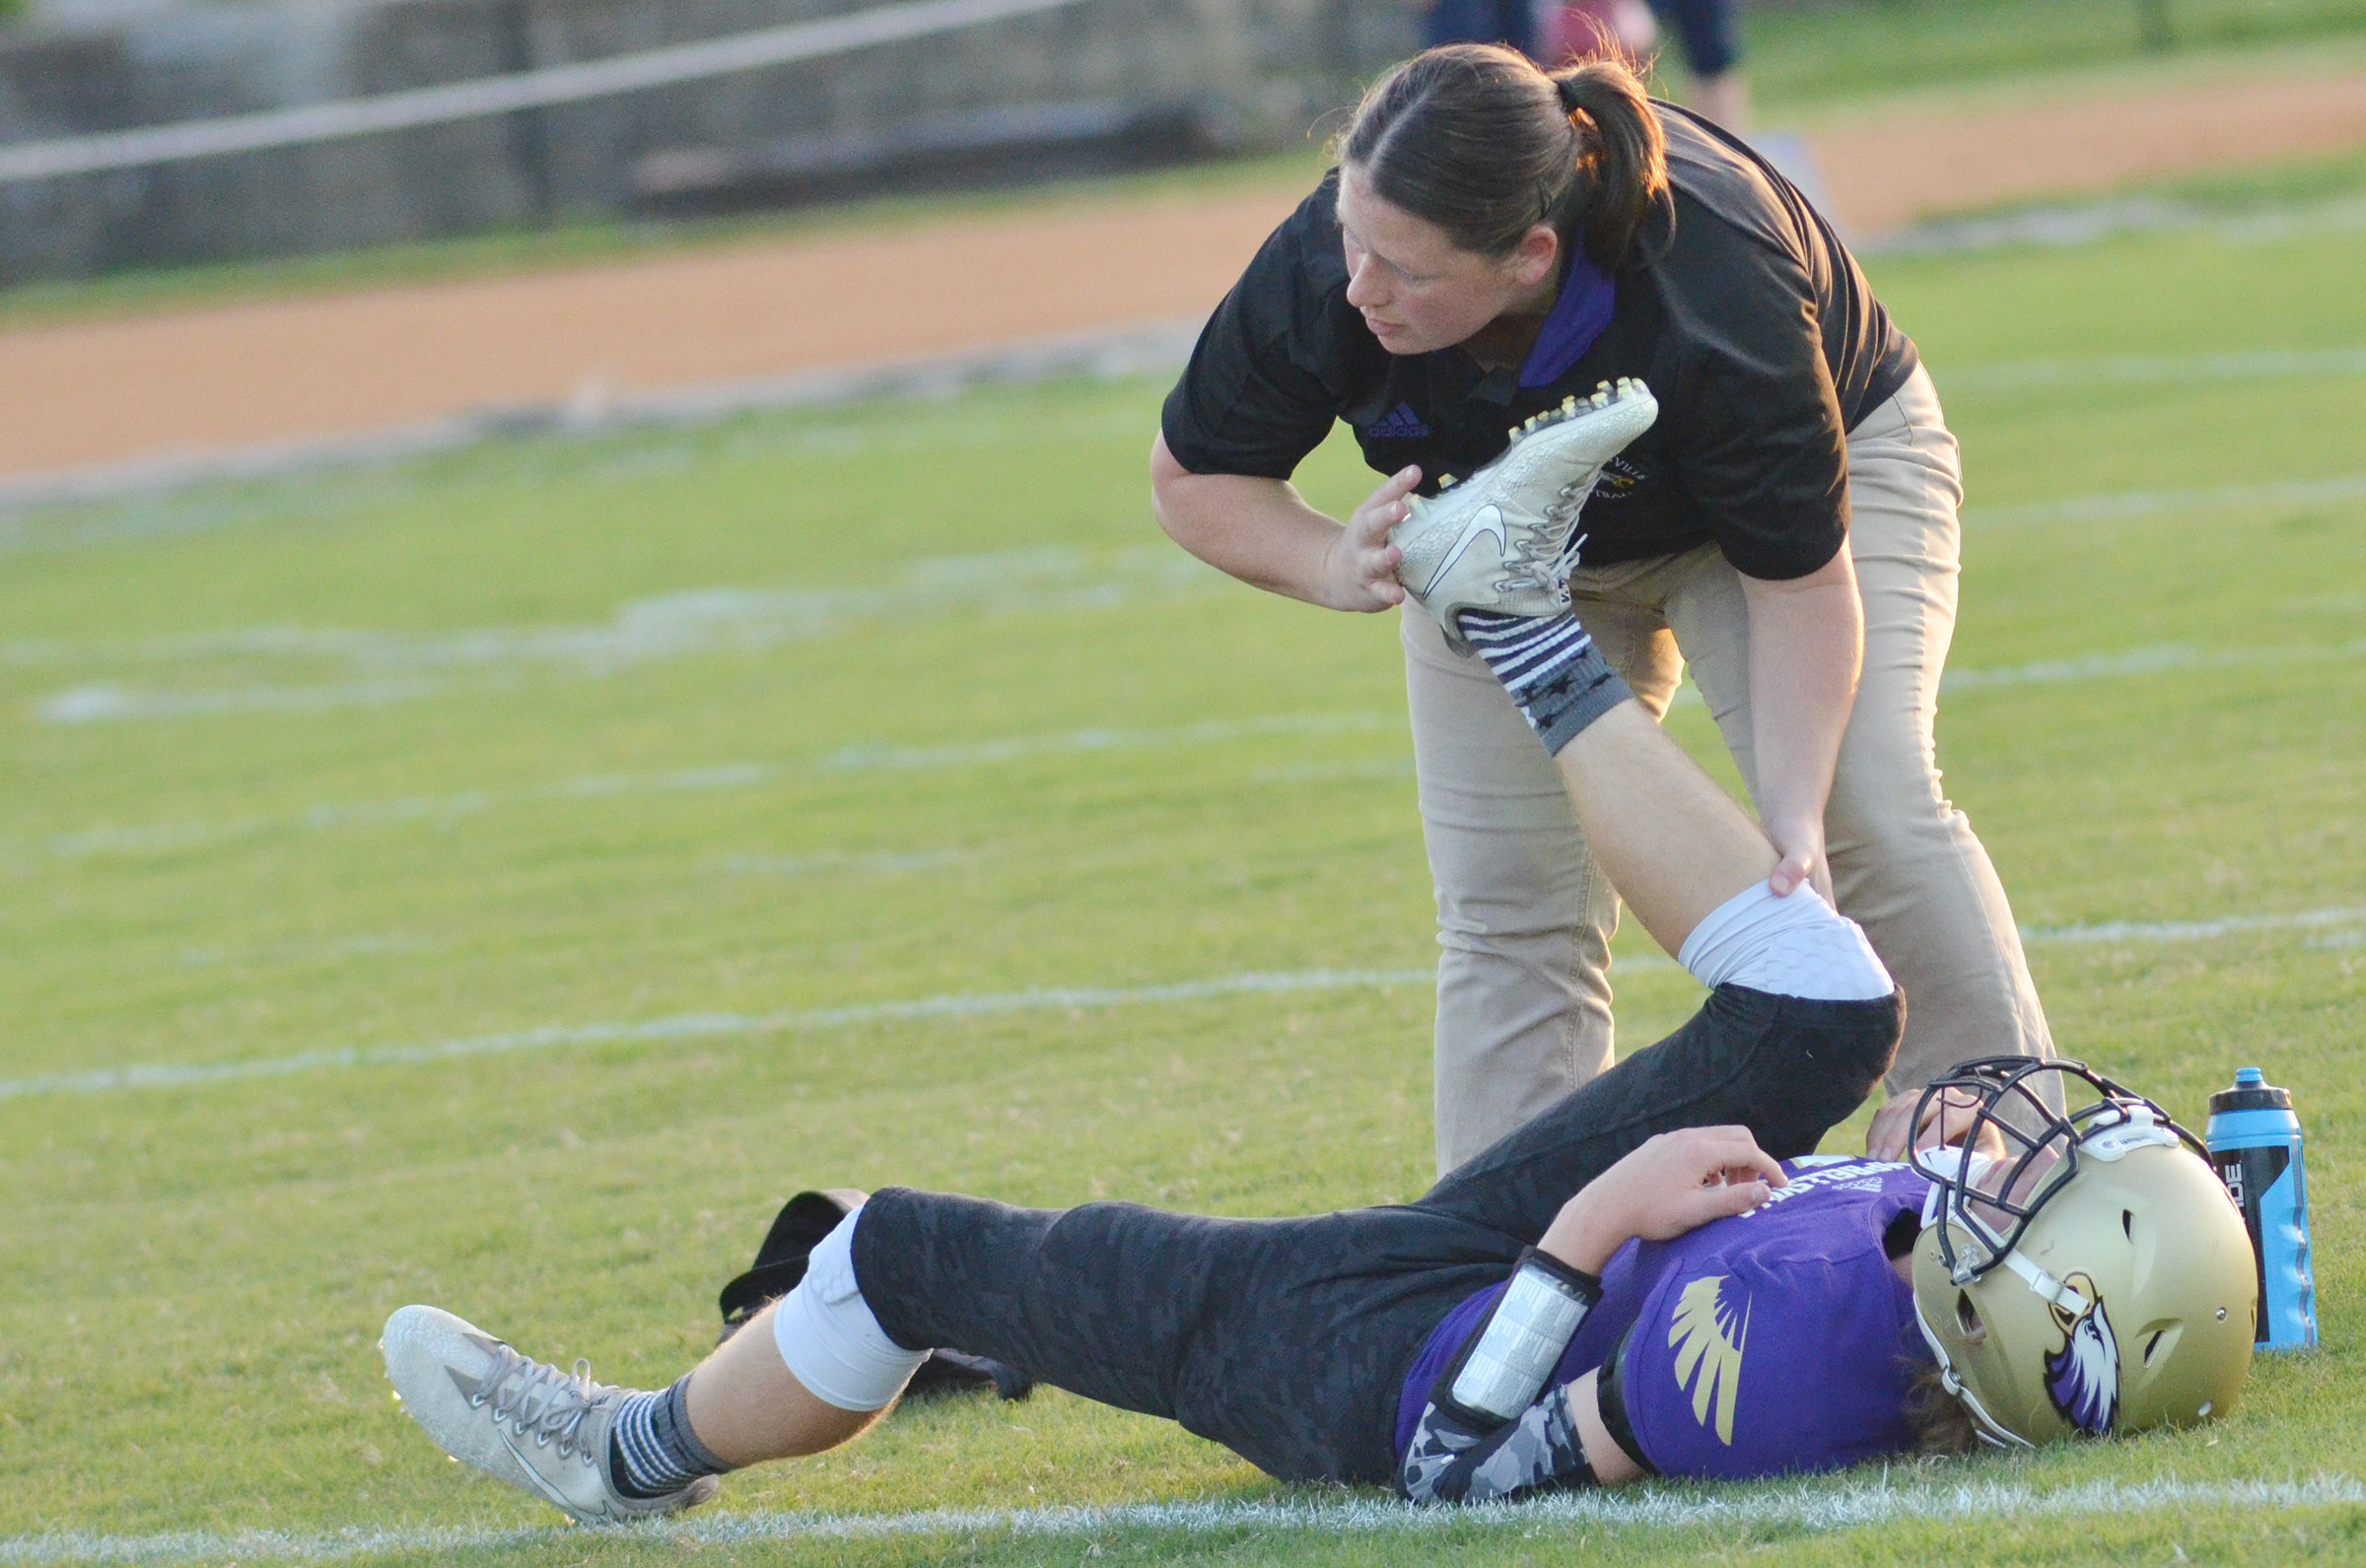 CHS trainer Rebecca Cravens stretches with freshman Arren Hash before the game.